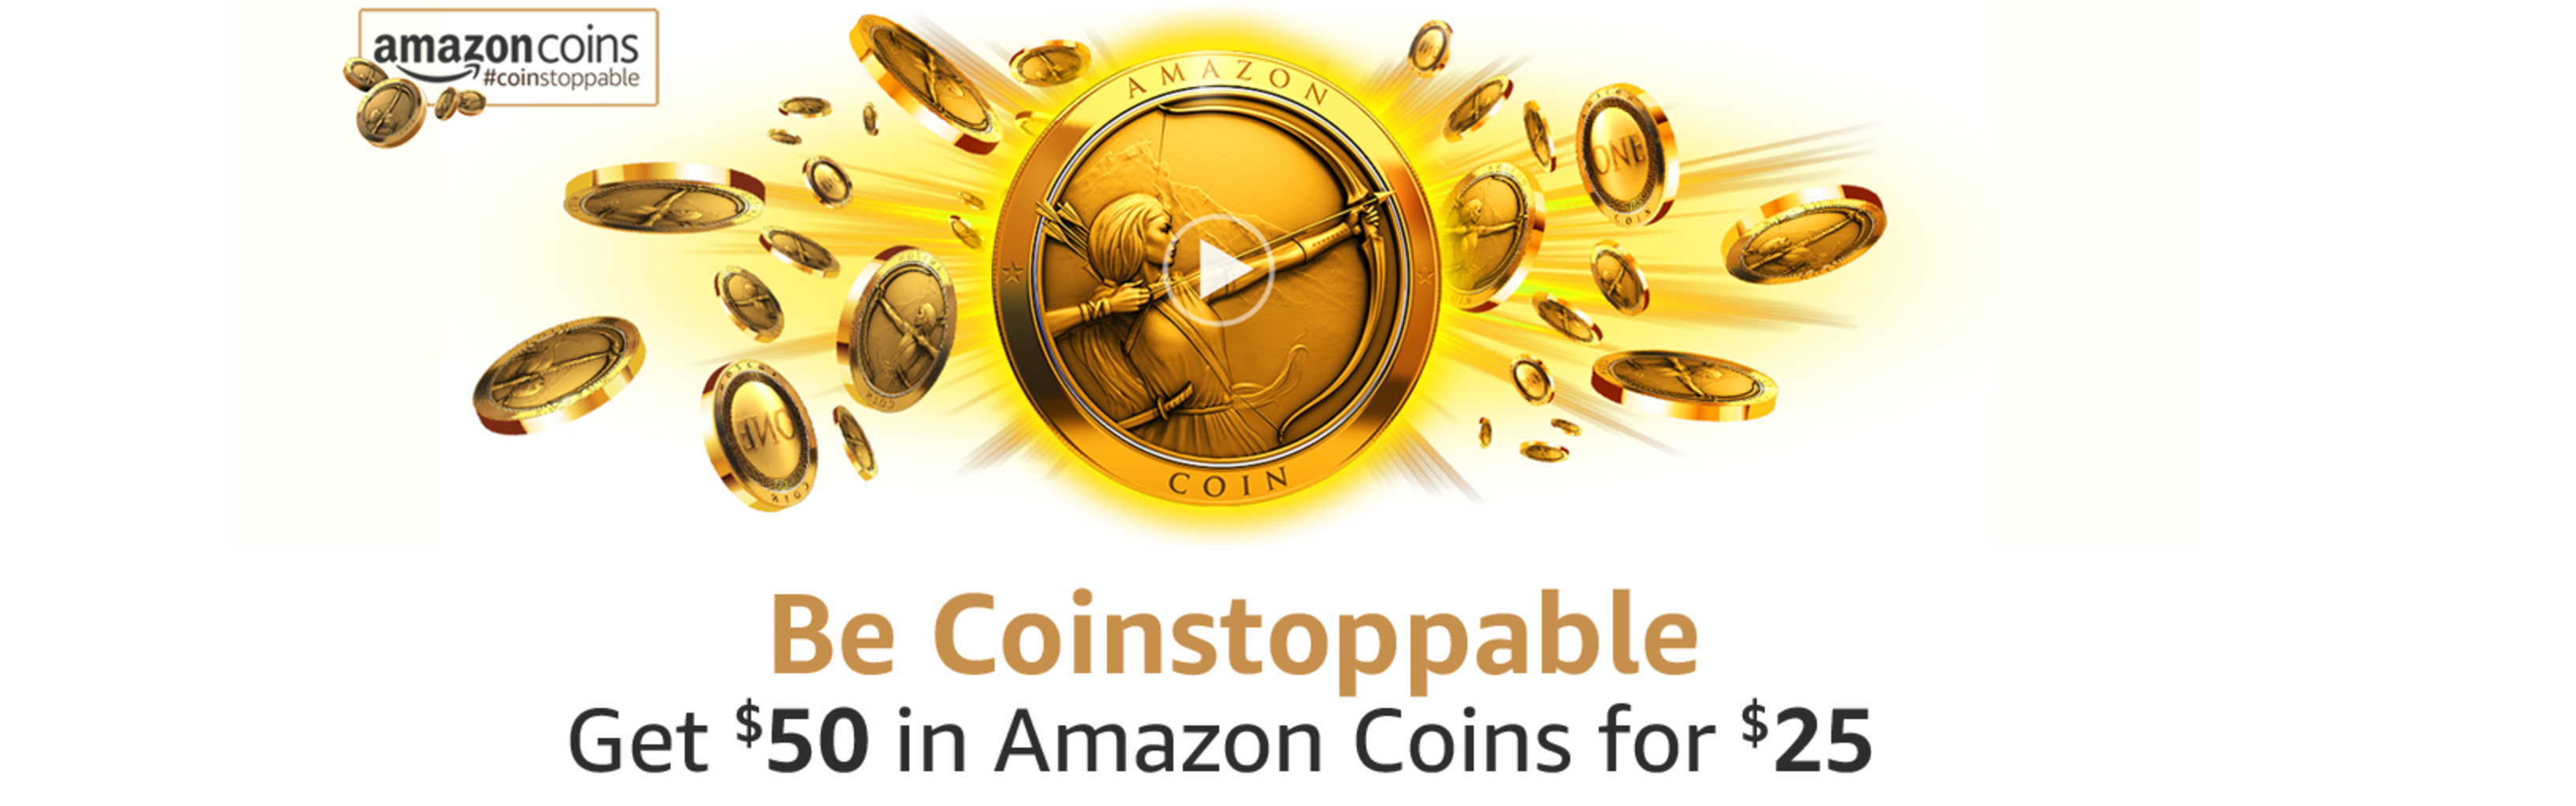 amazon-coin-sale